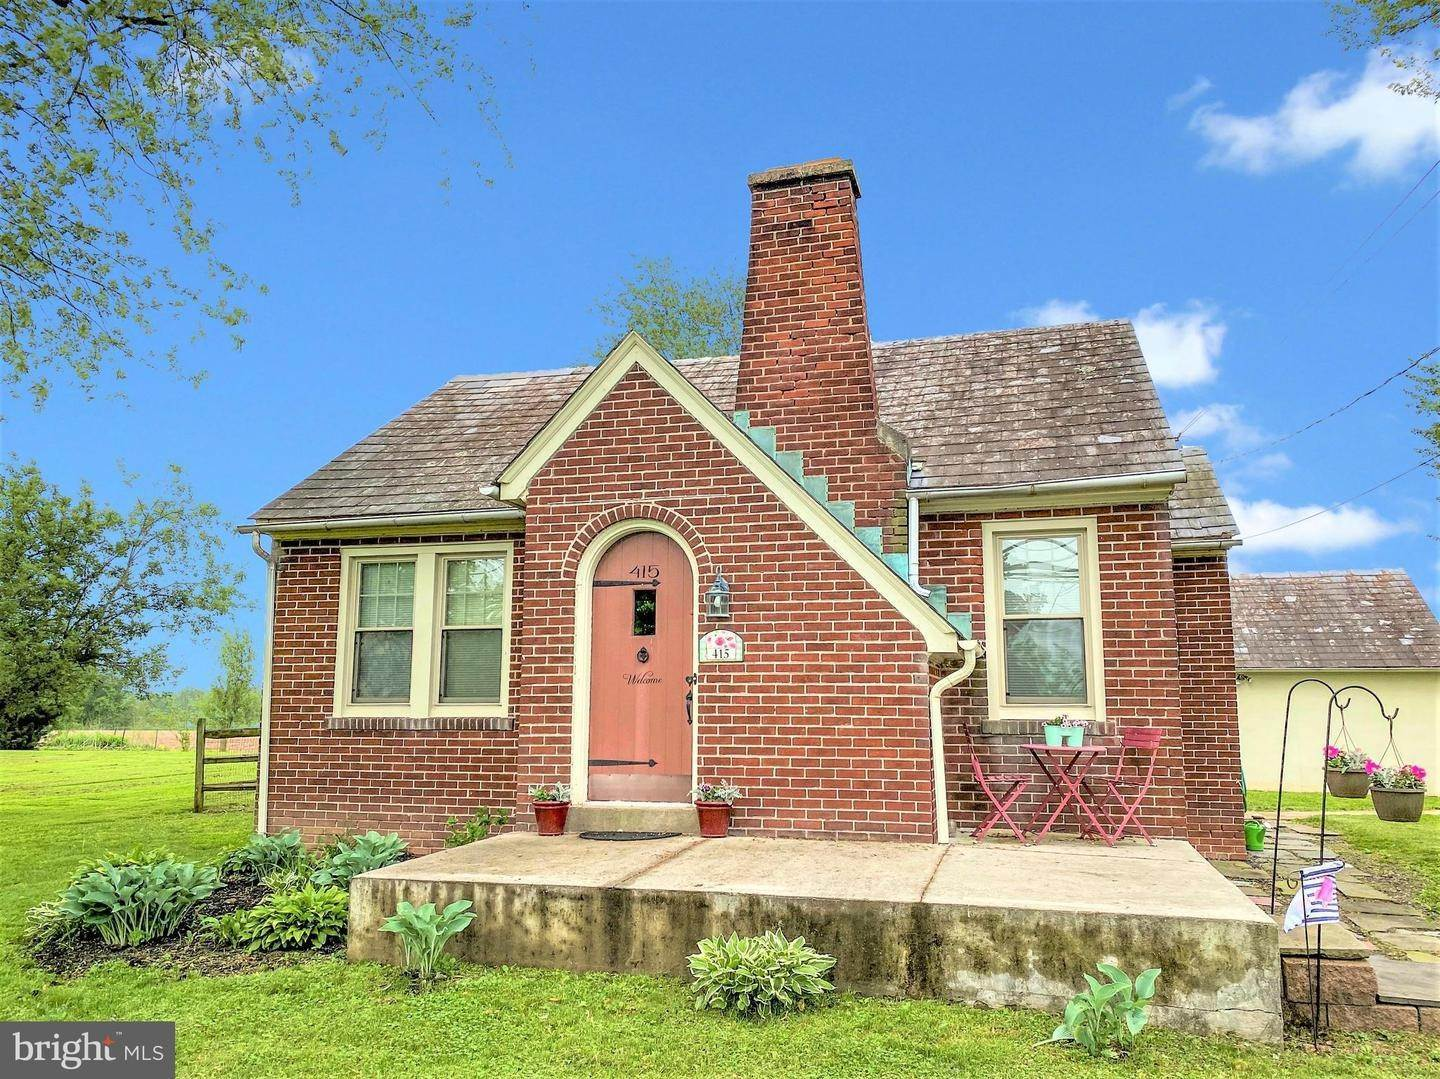 Detached House for Sale at 415 RICHLANDTOWN PIKE Quakertown, Pennsylvania 18951 United States